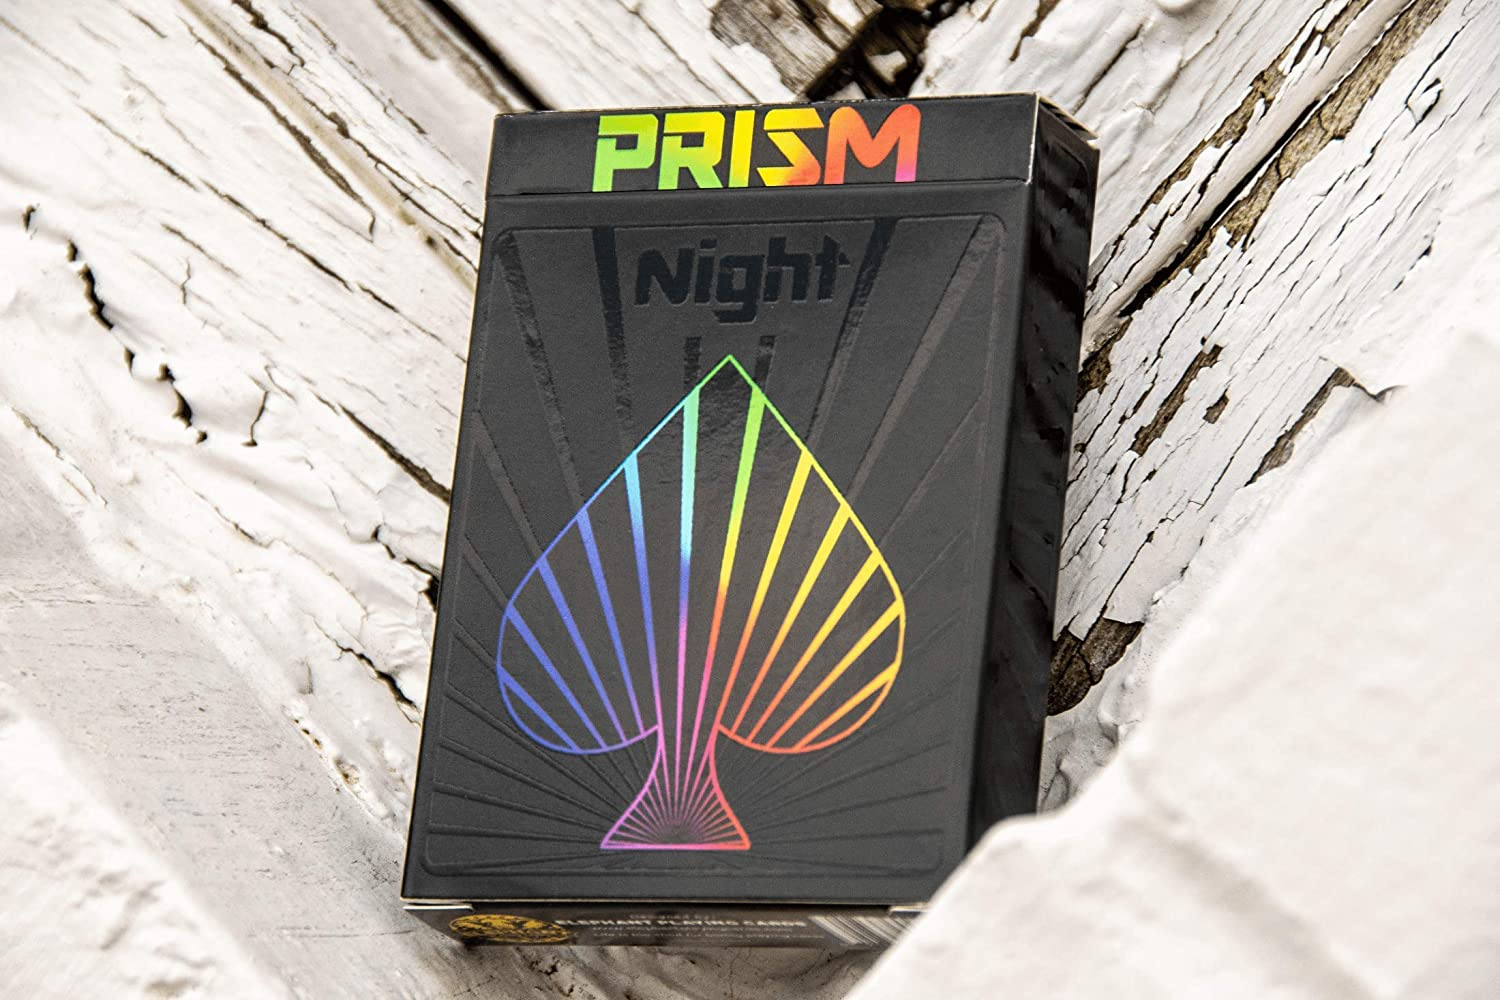 Cool Prism Gloss Ink Deck of Cards with Free Card Game eBook Unique Bright Rainbow /& Red Colors for Kids /& Adults Great Poker Cards Premium Playing Cards Black Playing Cards Games